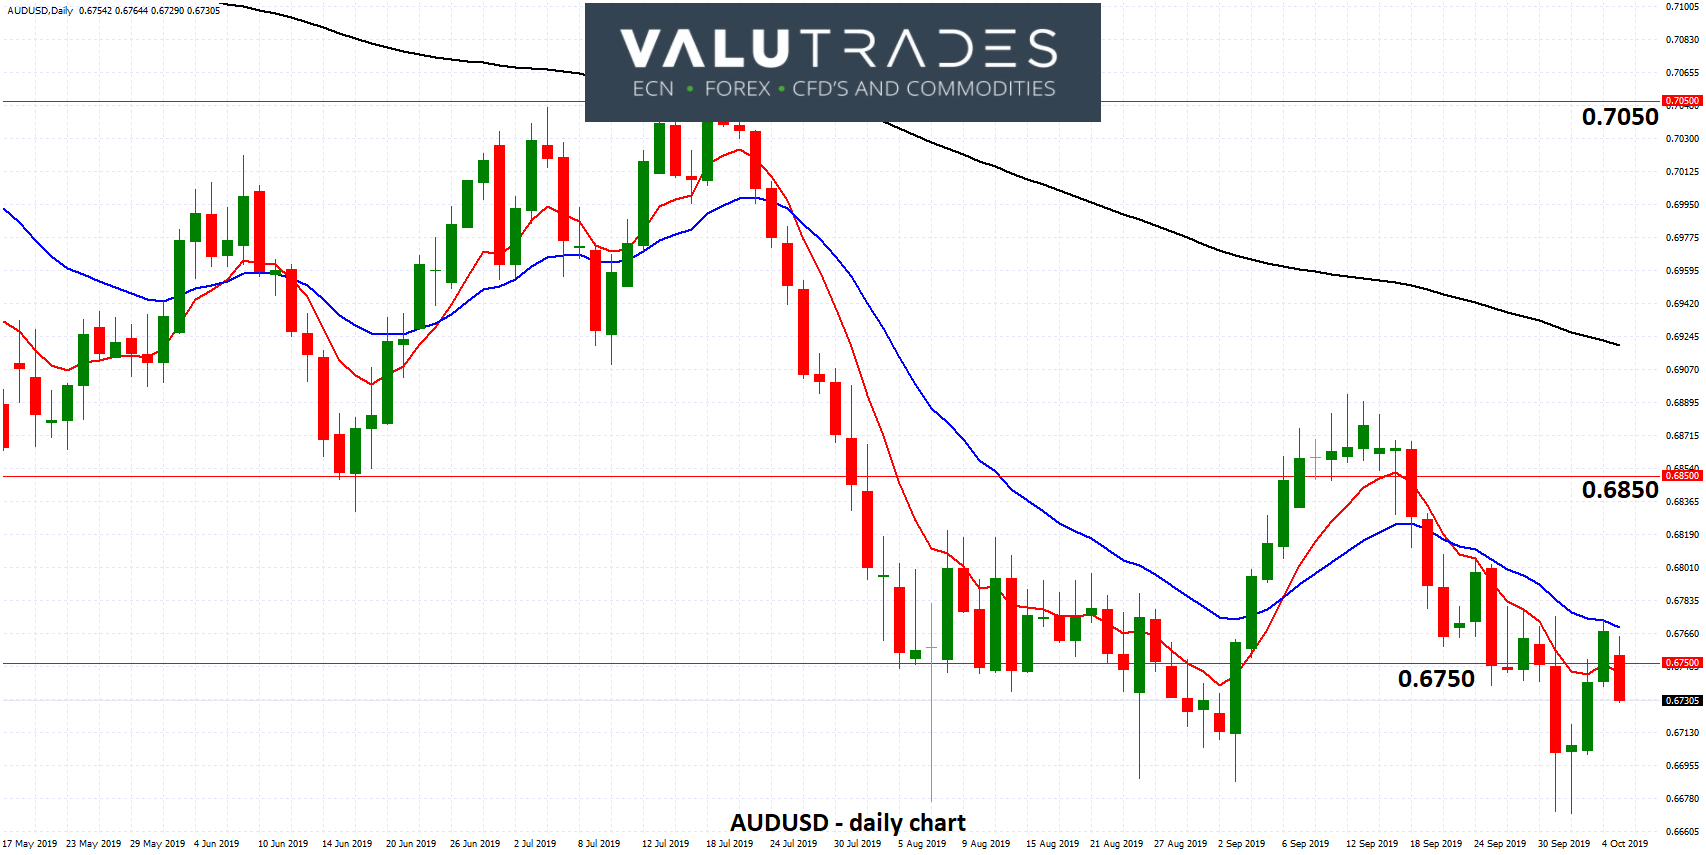 AUDUSD - Rallies from Ten Year Low Below 0.67 after RBAs Latest Rate Cut